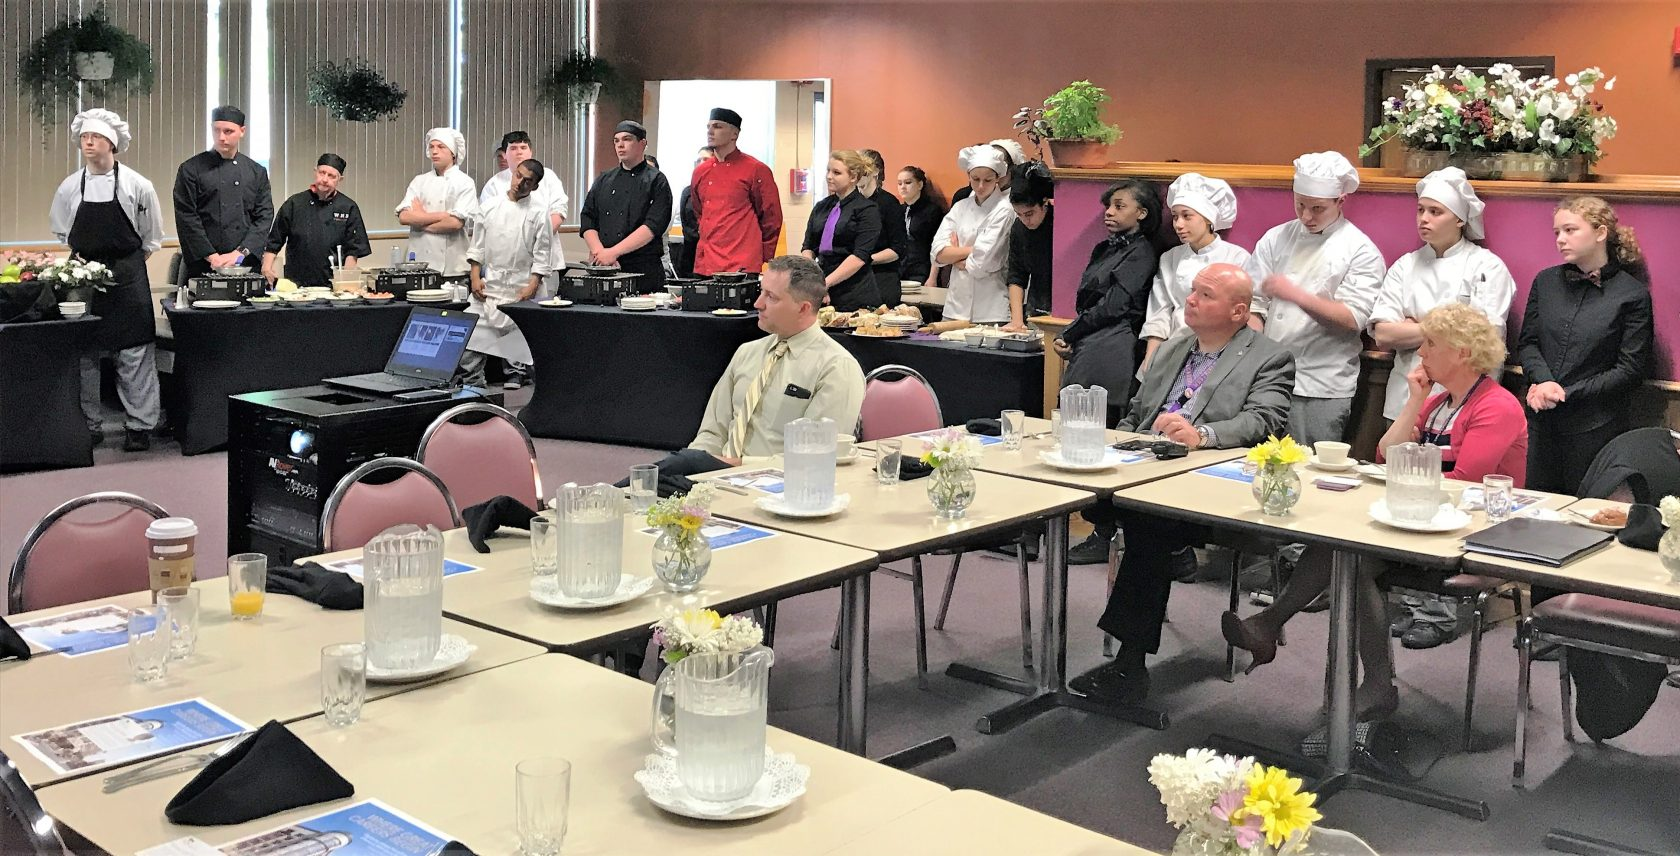 MGM speaks to culinary arts students about career opportunities